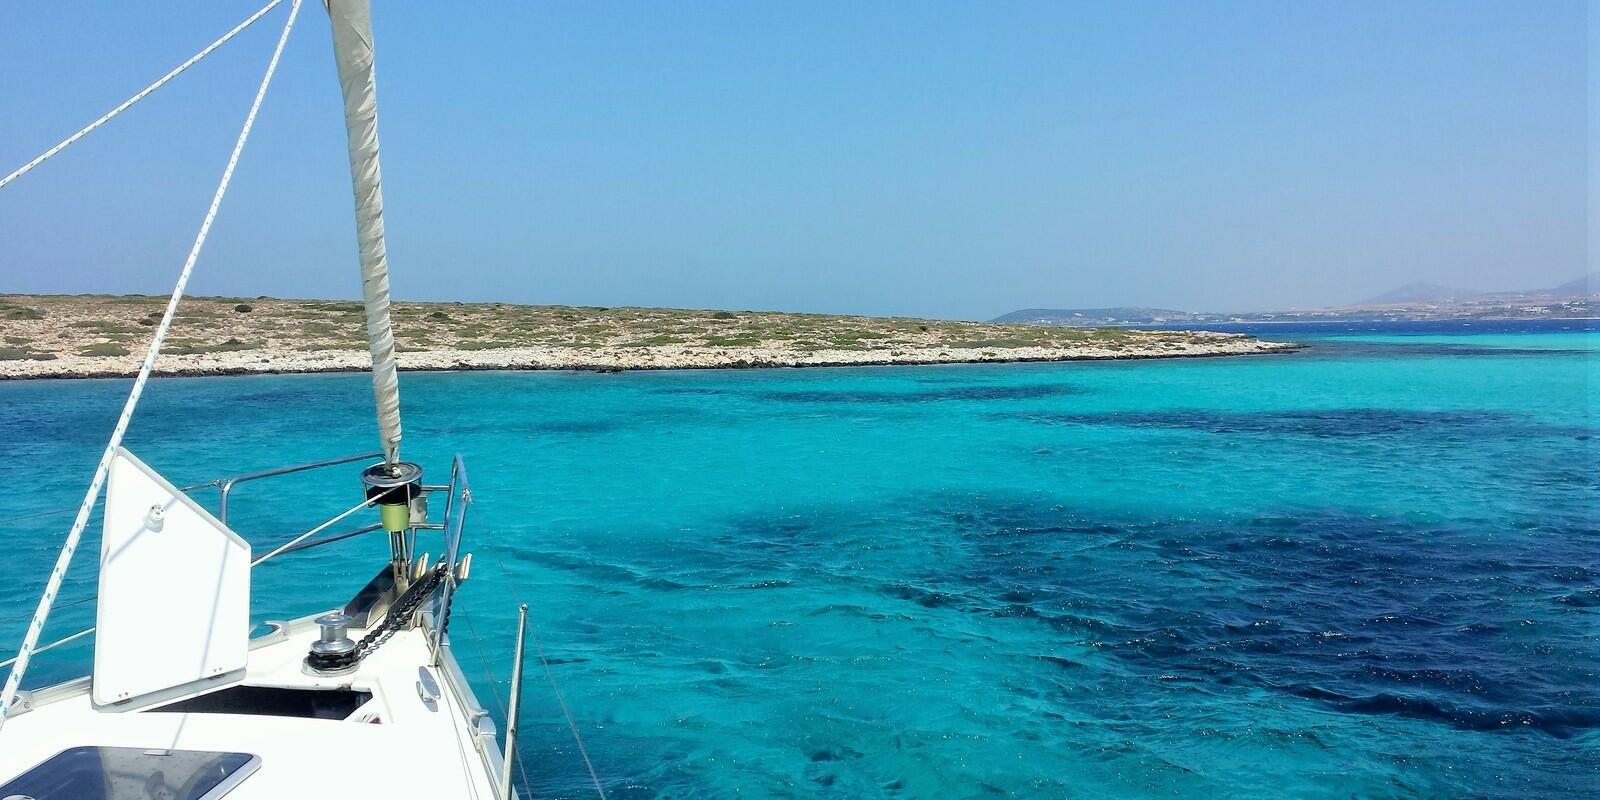 A sailing cruise in the big blue of the Dodecanese